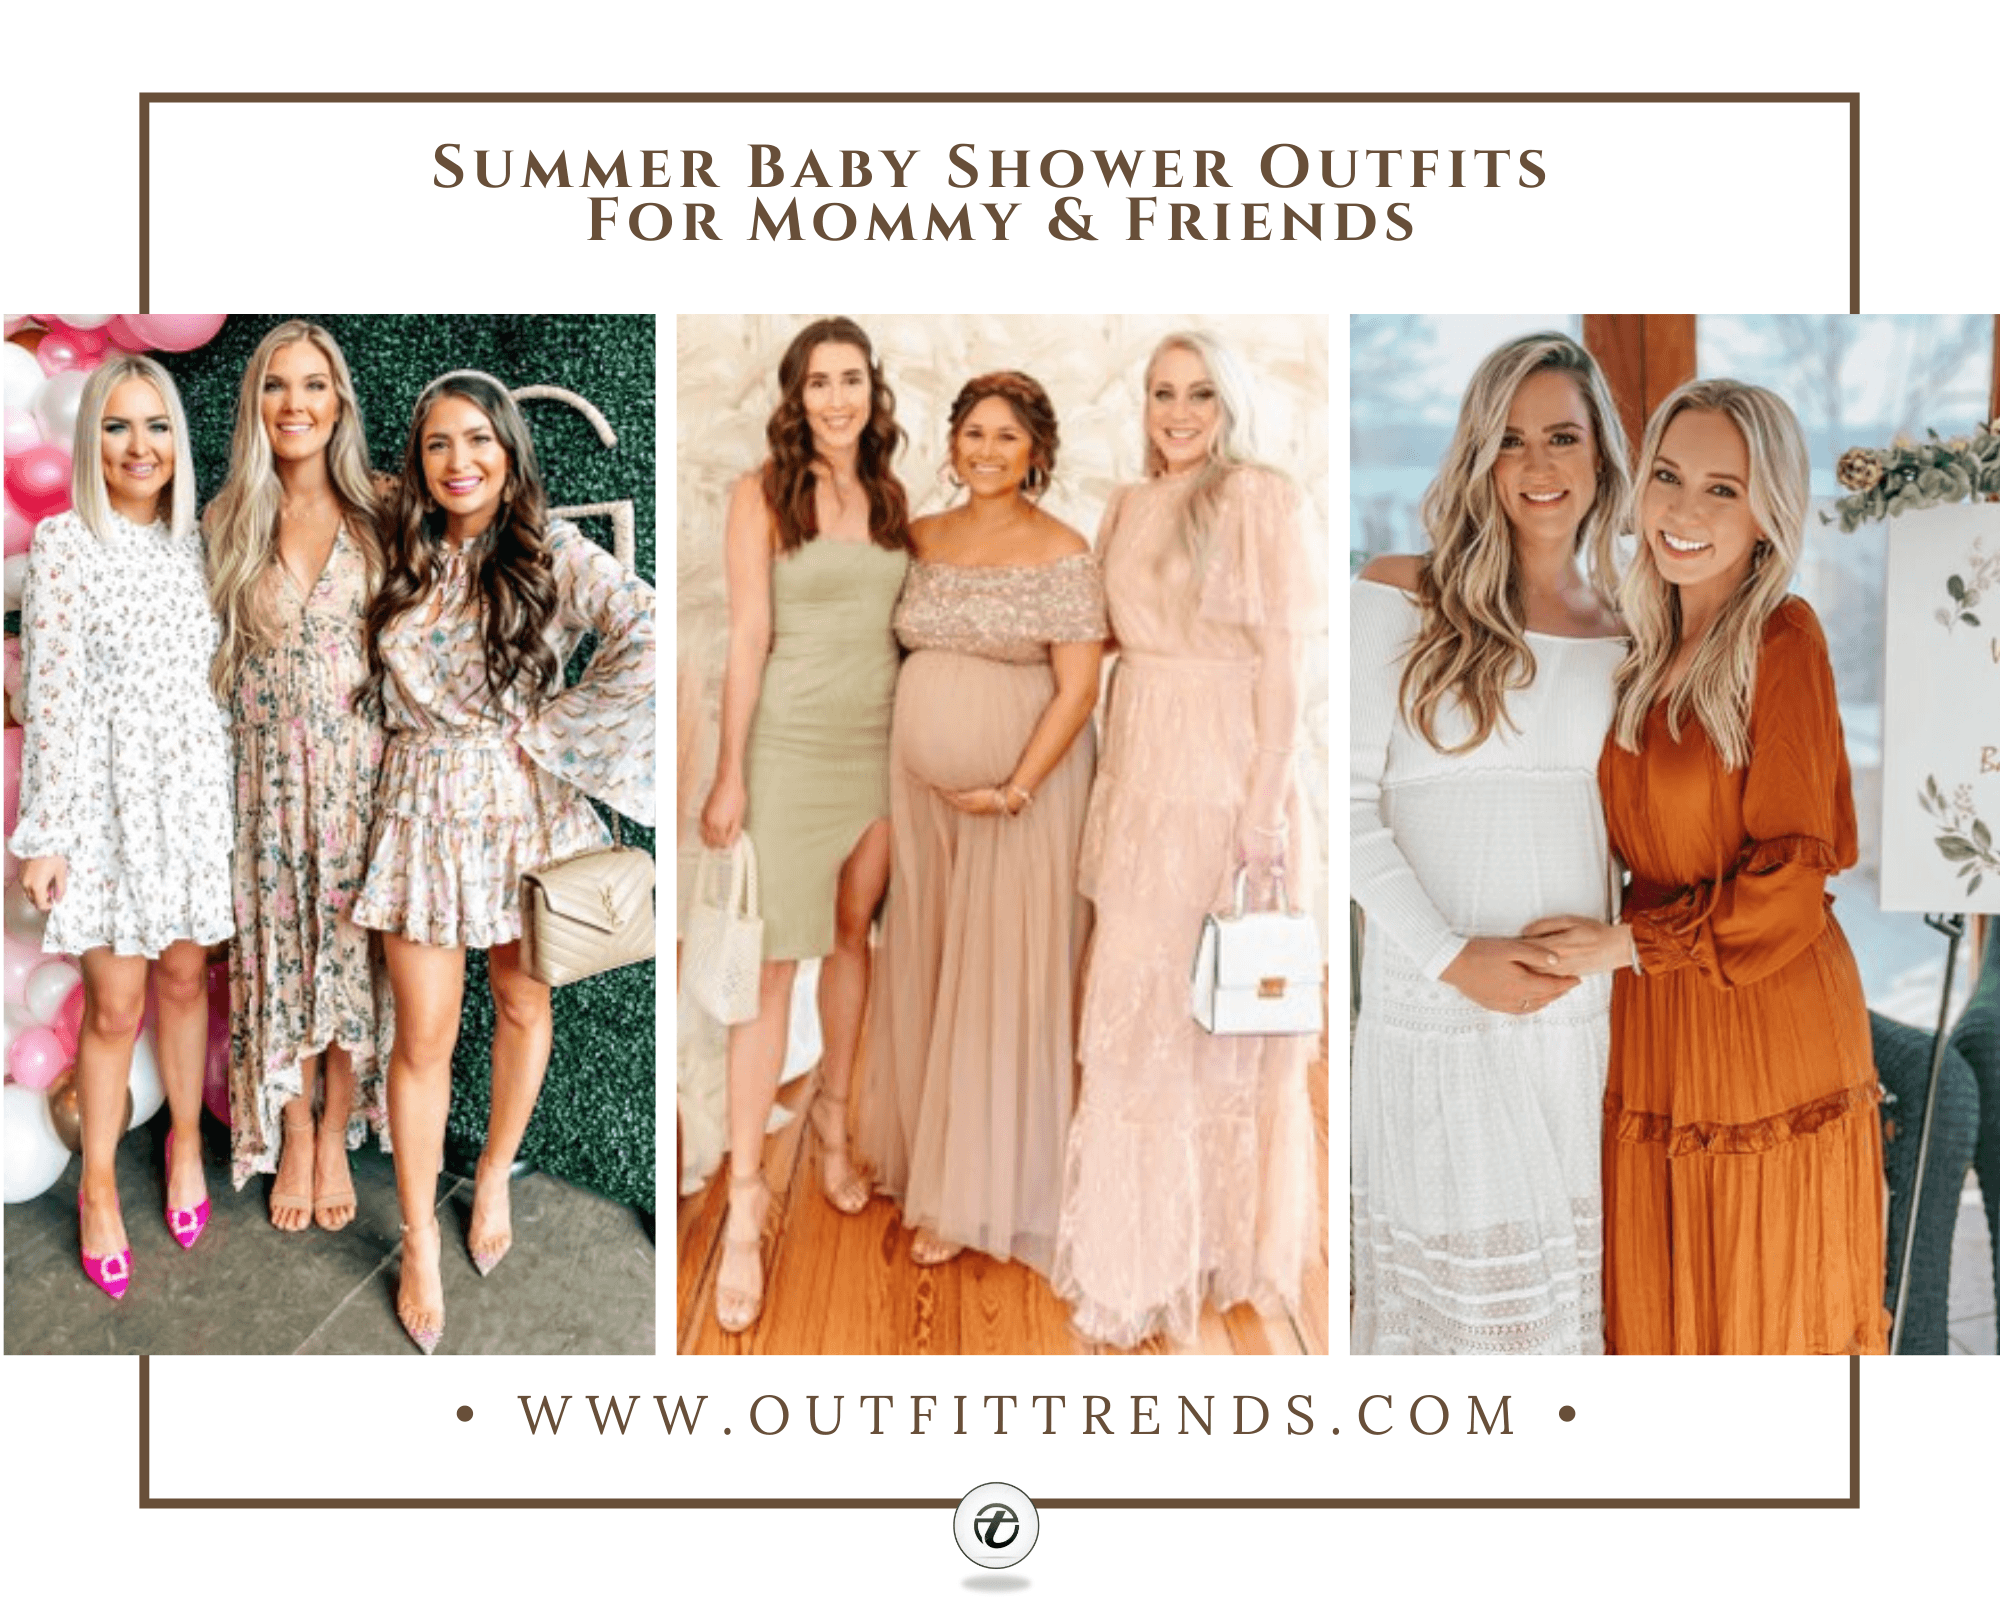 27 Comfortable Summer Baby Shower Outfits For Mommy & Guests